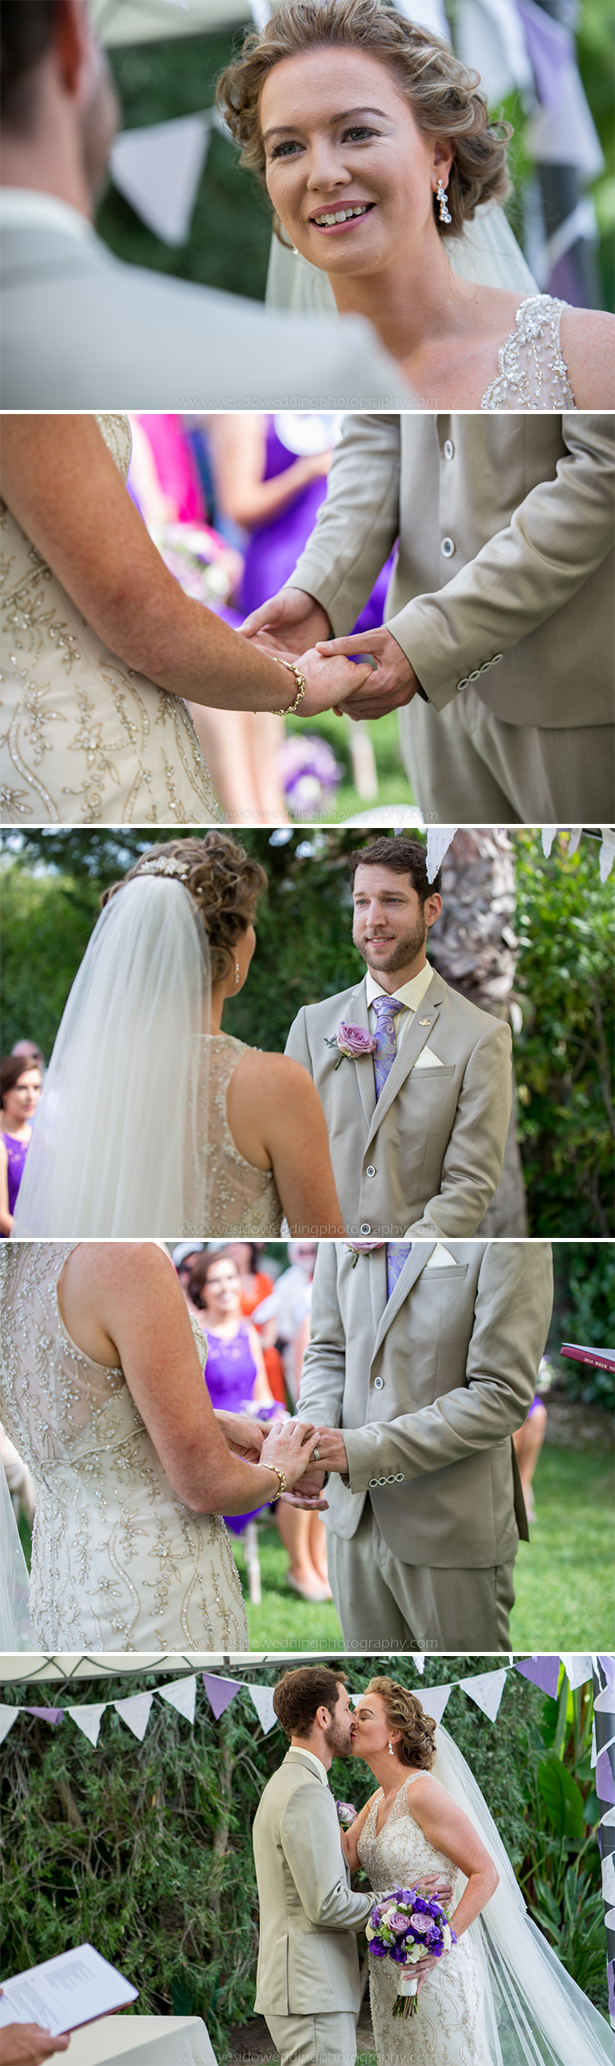 Bride and groom exchanging vows in an outdoor wedding ceremony   Wedding ceremoyn at Monte Da Quinta resort in Almancil, Portugal   Marina and Gary's lavender real wedding   Yes I do! Algarve Wedding Photography   Confetti.fo.uk